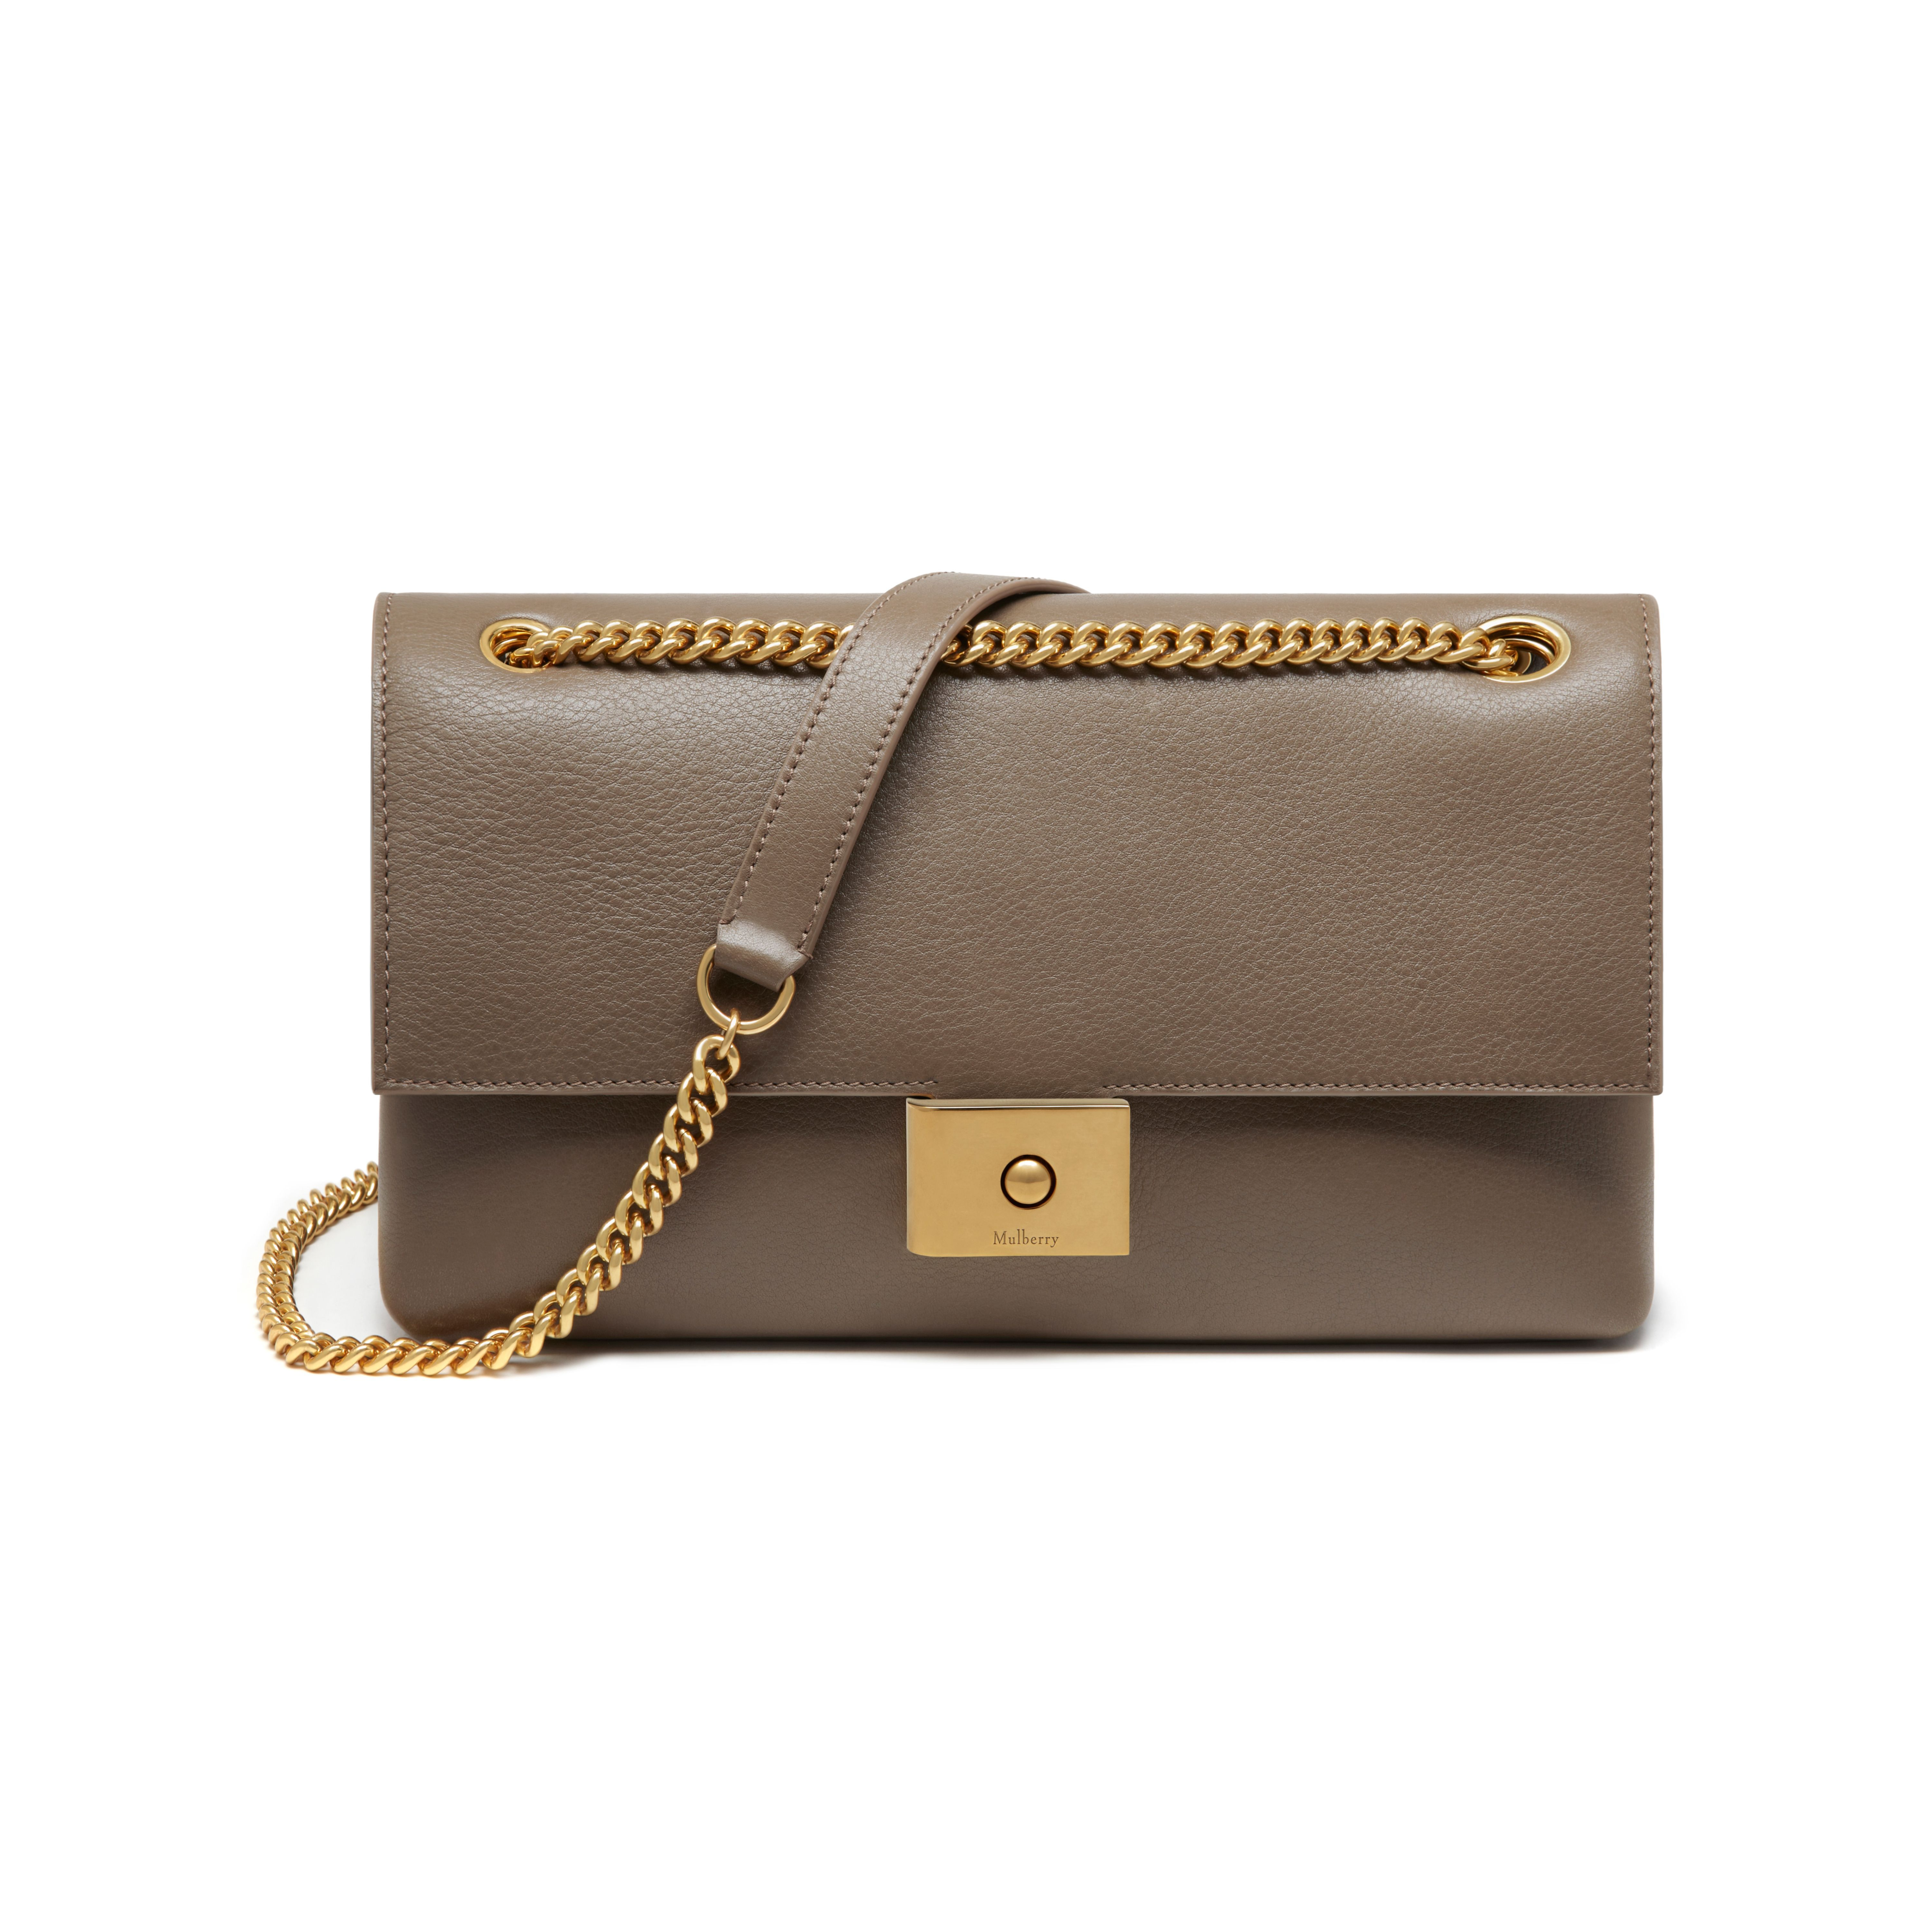 3d8458594de0 Shop the Cheyne in Clay Smooth Calf Leather at Mulberry.com. The beautiful  clasp is the centrepiece of the sophisticated Cheyne.